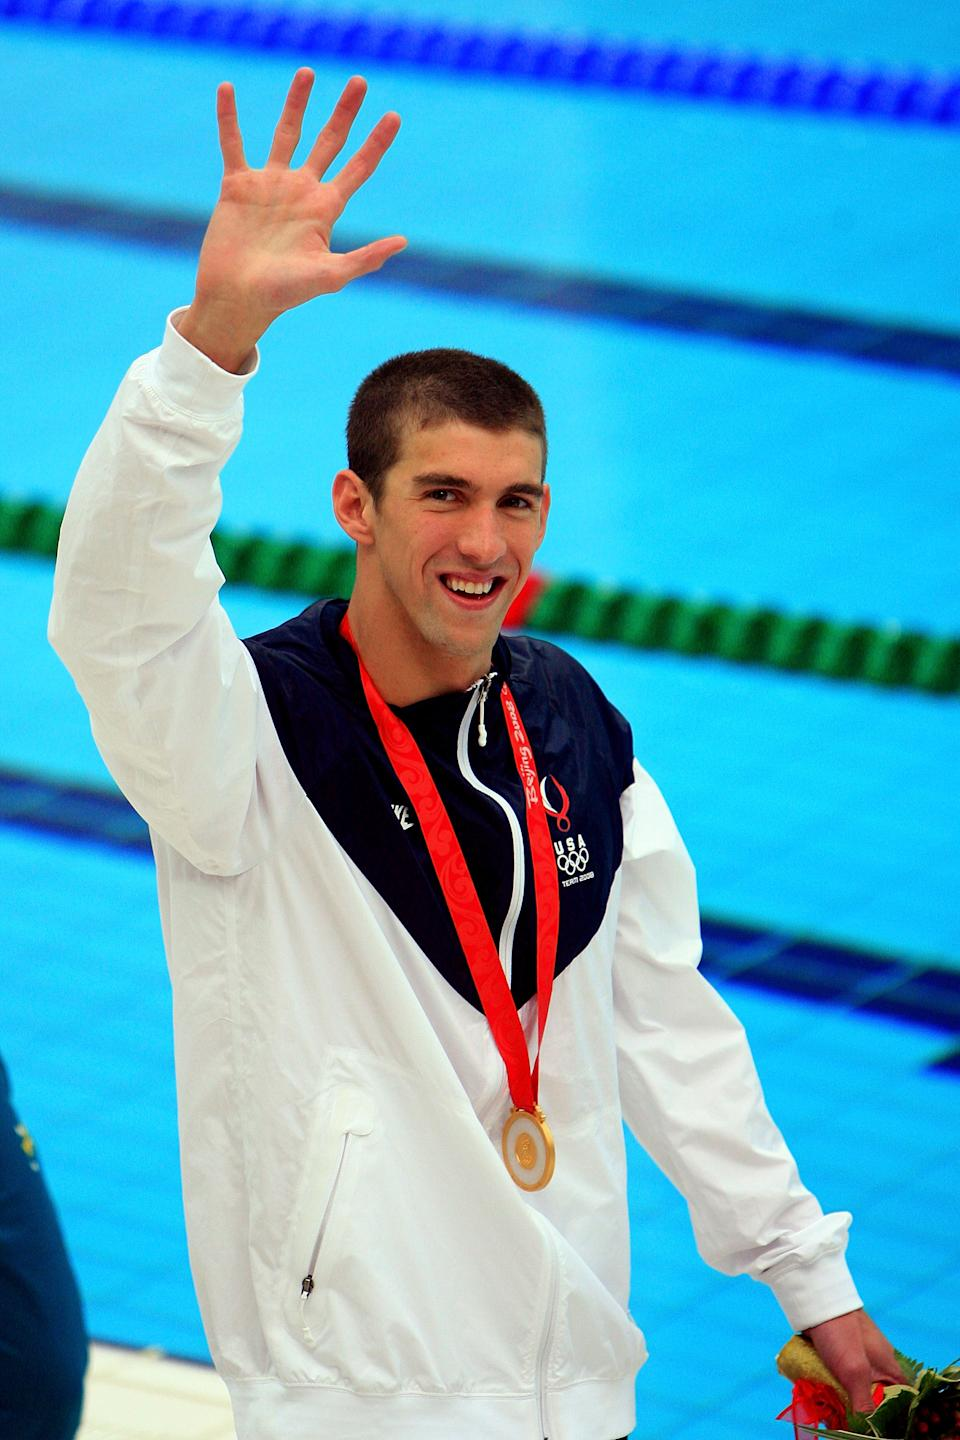 <b>Medal No. 15</b><br>Gold medalist Michael Phelps waves during the medal ceremony for the Men's 100m Butterfly in Beijing. His seventh gold of the games tied Mark Spitz for most golds in one Olympiad.